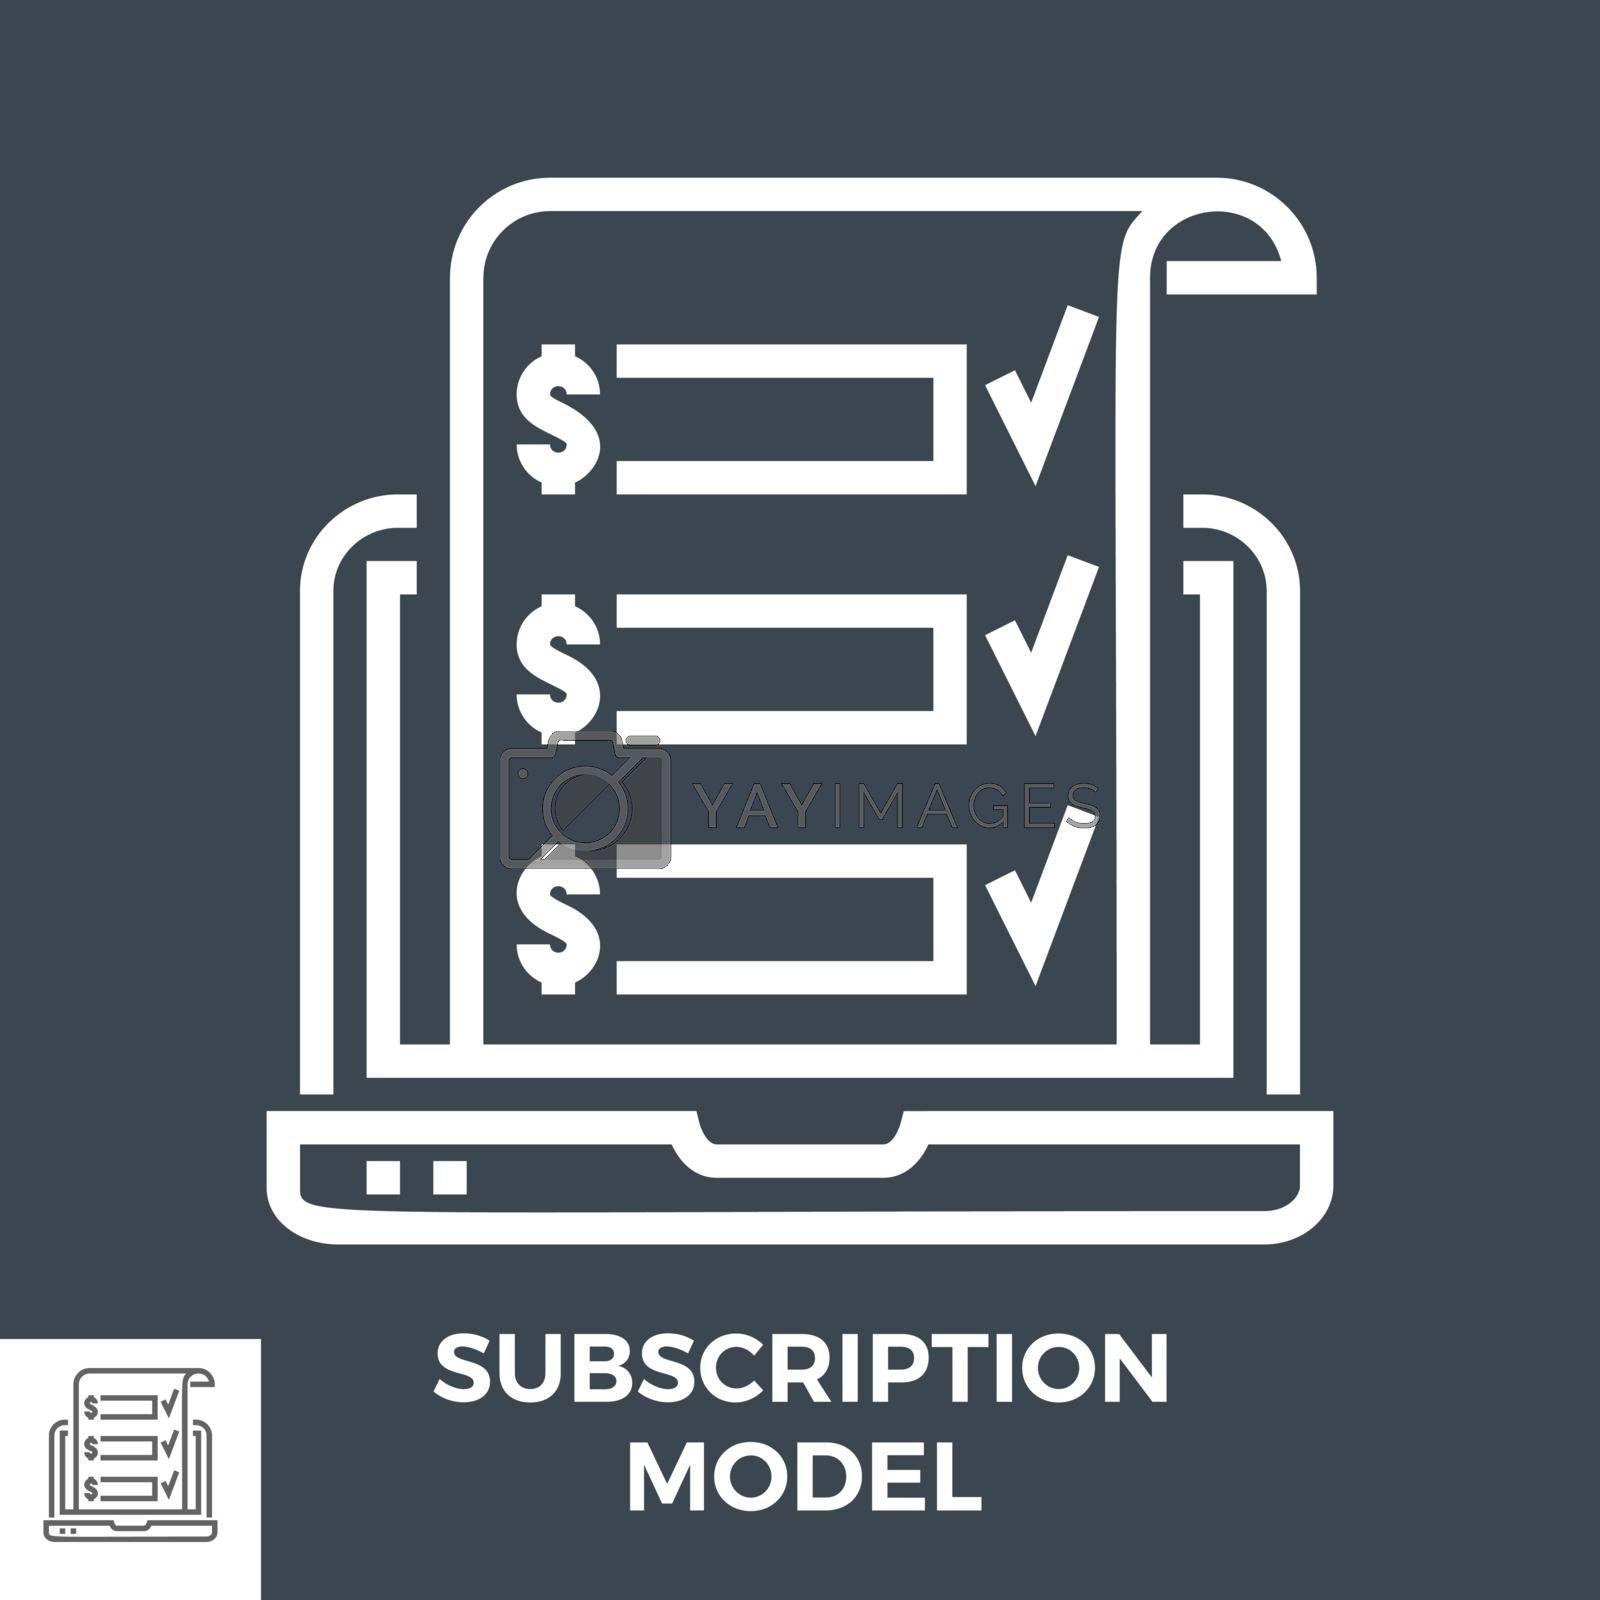 Subscription Model Thin Line Vector Icon Isolated on the Black Background.